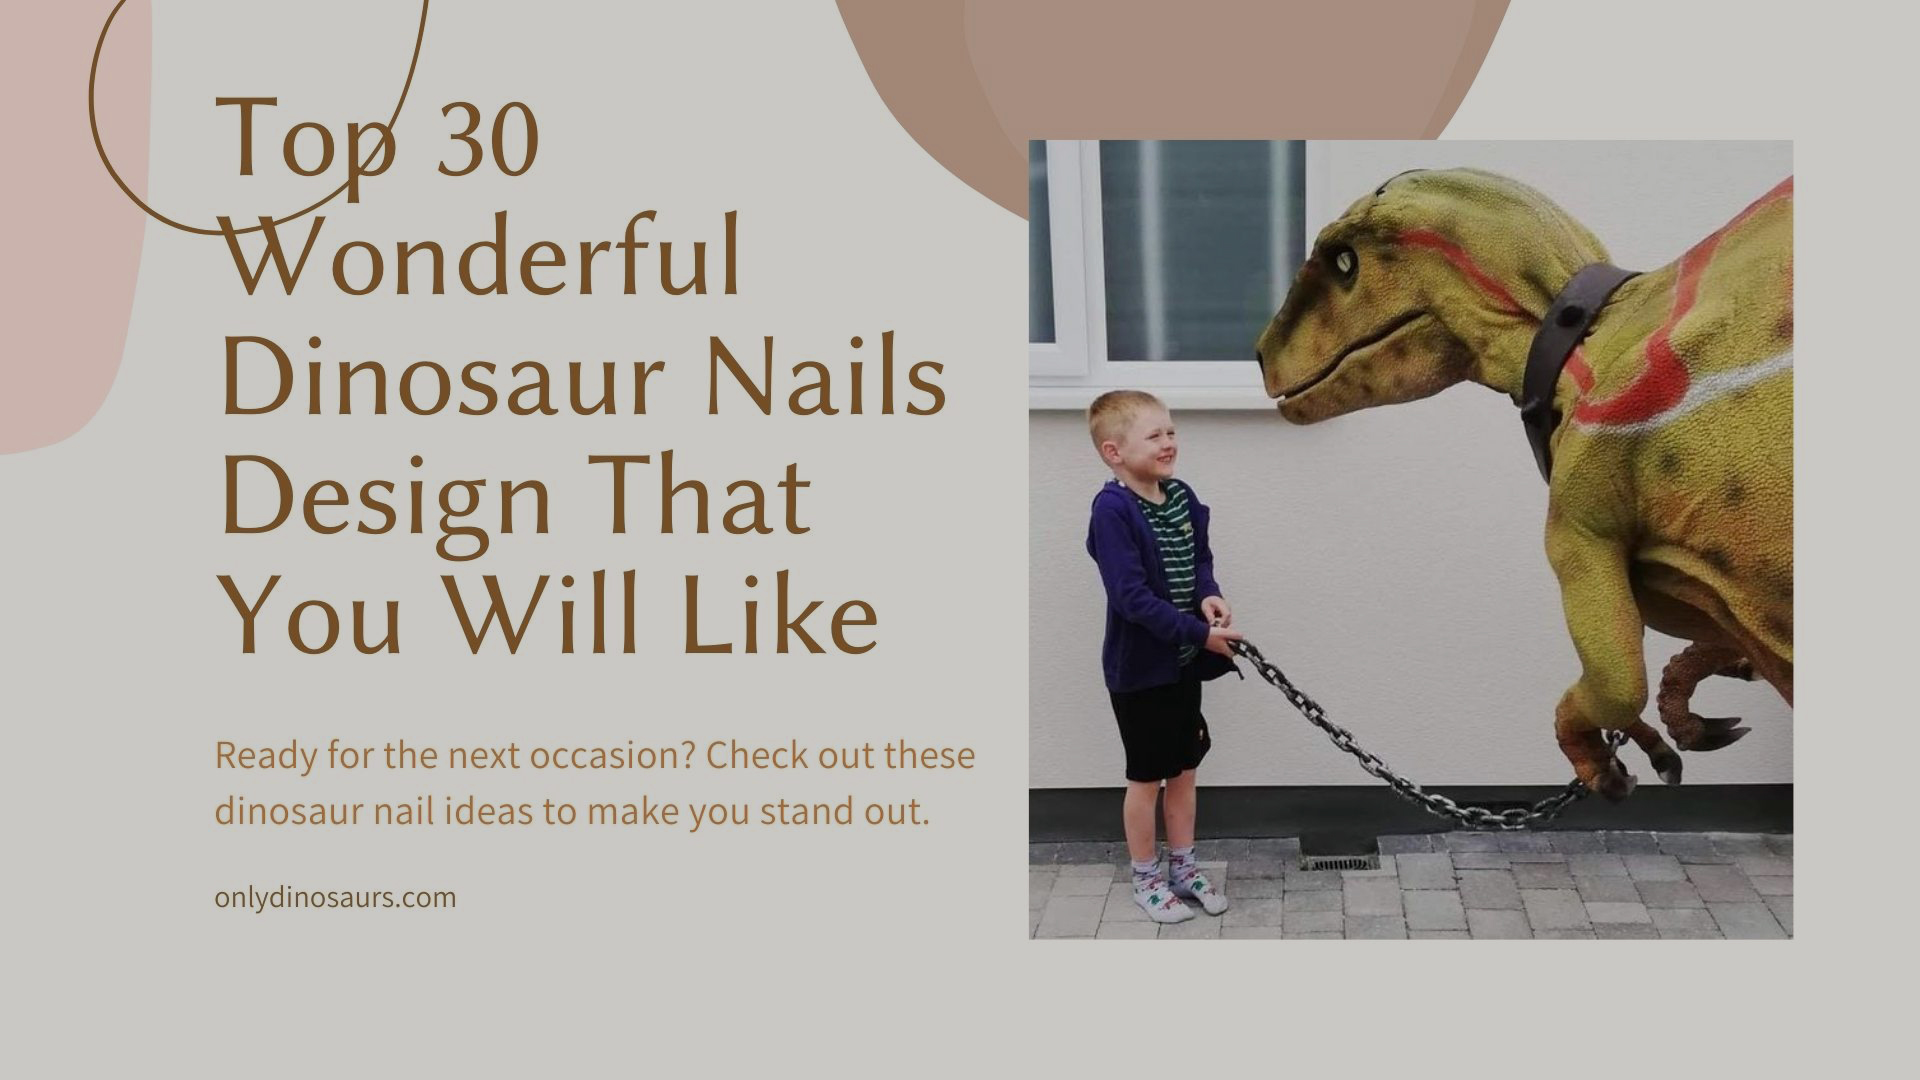 Top 30 Wonderful Dinosaur Nails Design That You Will Like